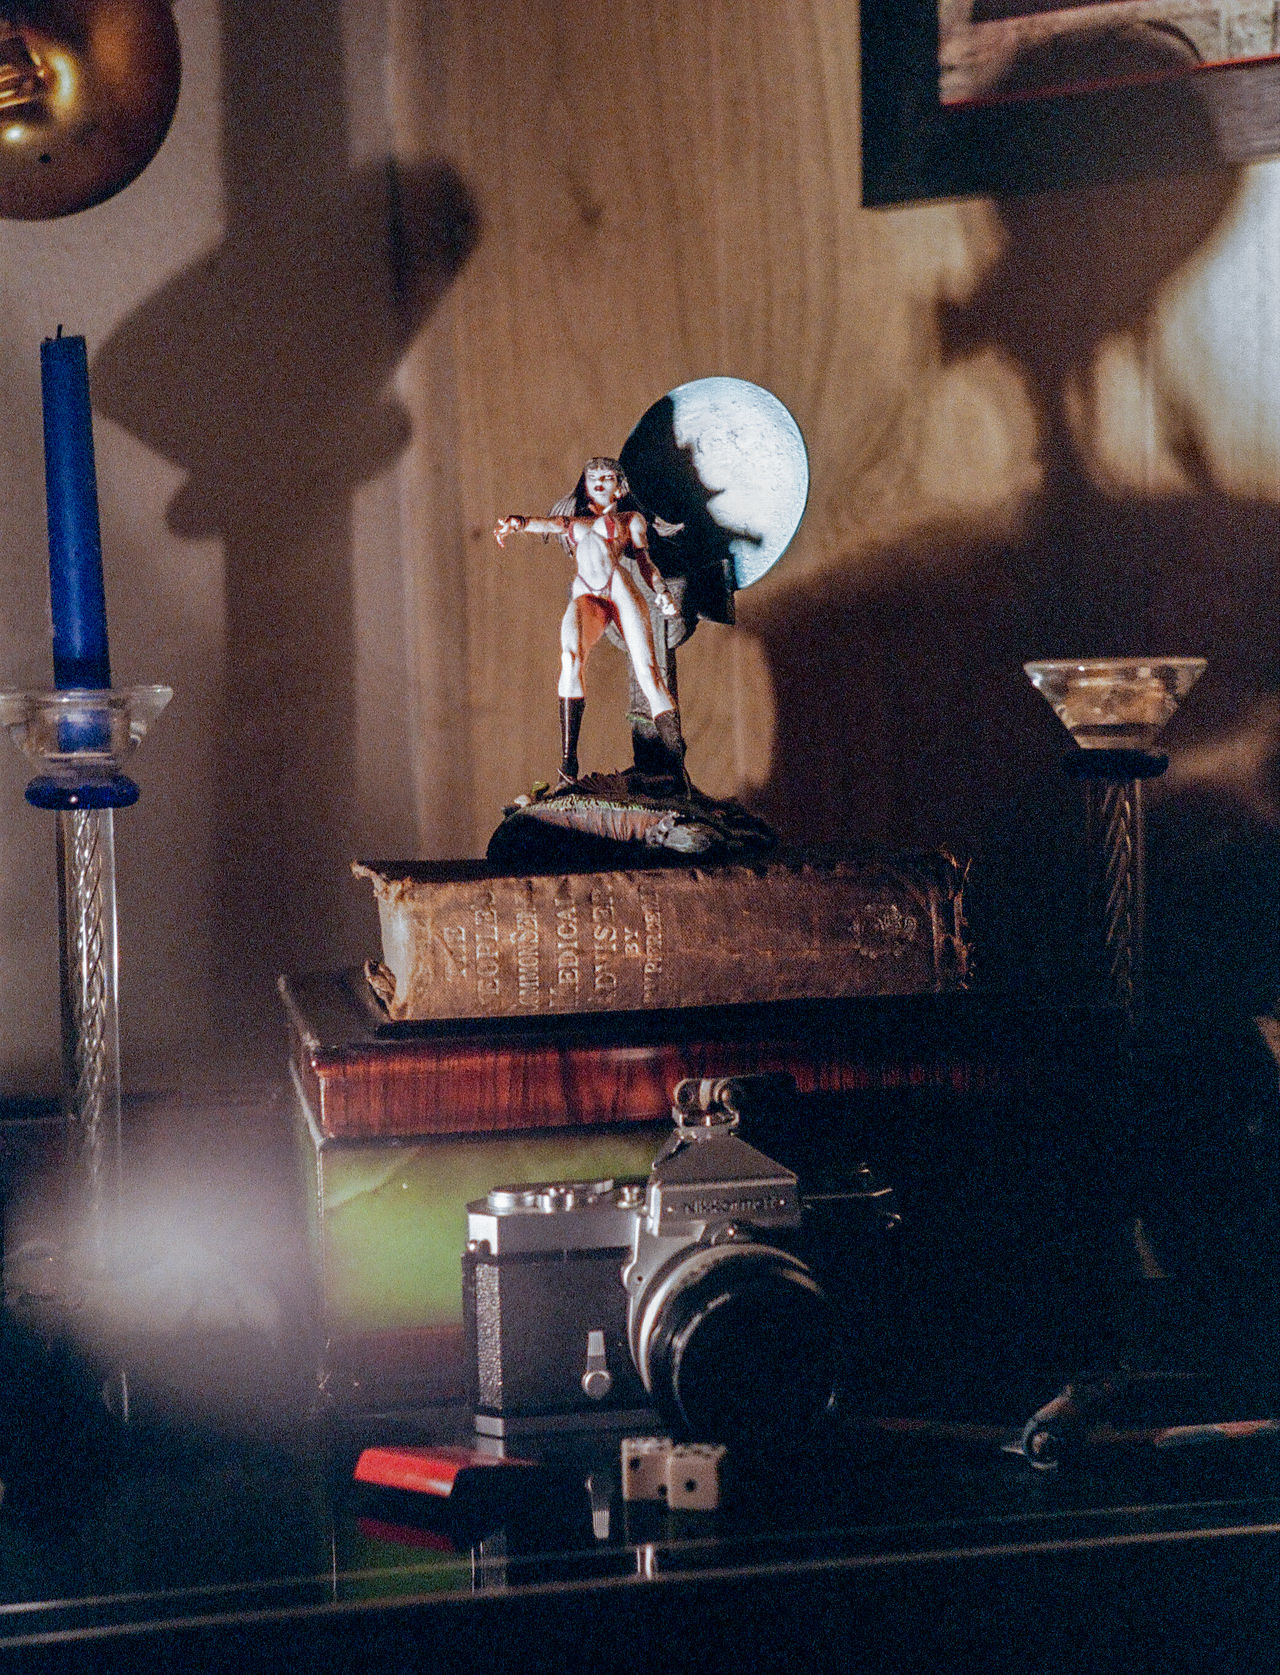 Still Life shot on 35mm film in Studio Analog Analog Camera Analogue Photography Arcane Candles Dice Figure Halloween Indoors  No People Old Books Shadowplay Shadows Shadows On The Wall Spooky Spooky Atmosphere Still Life Studio Shot Toys Turntable 35mm Film 35mm Camera